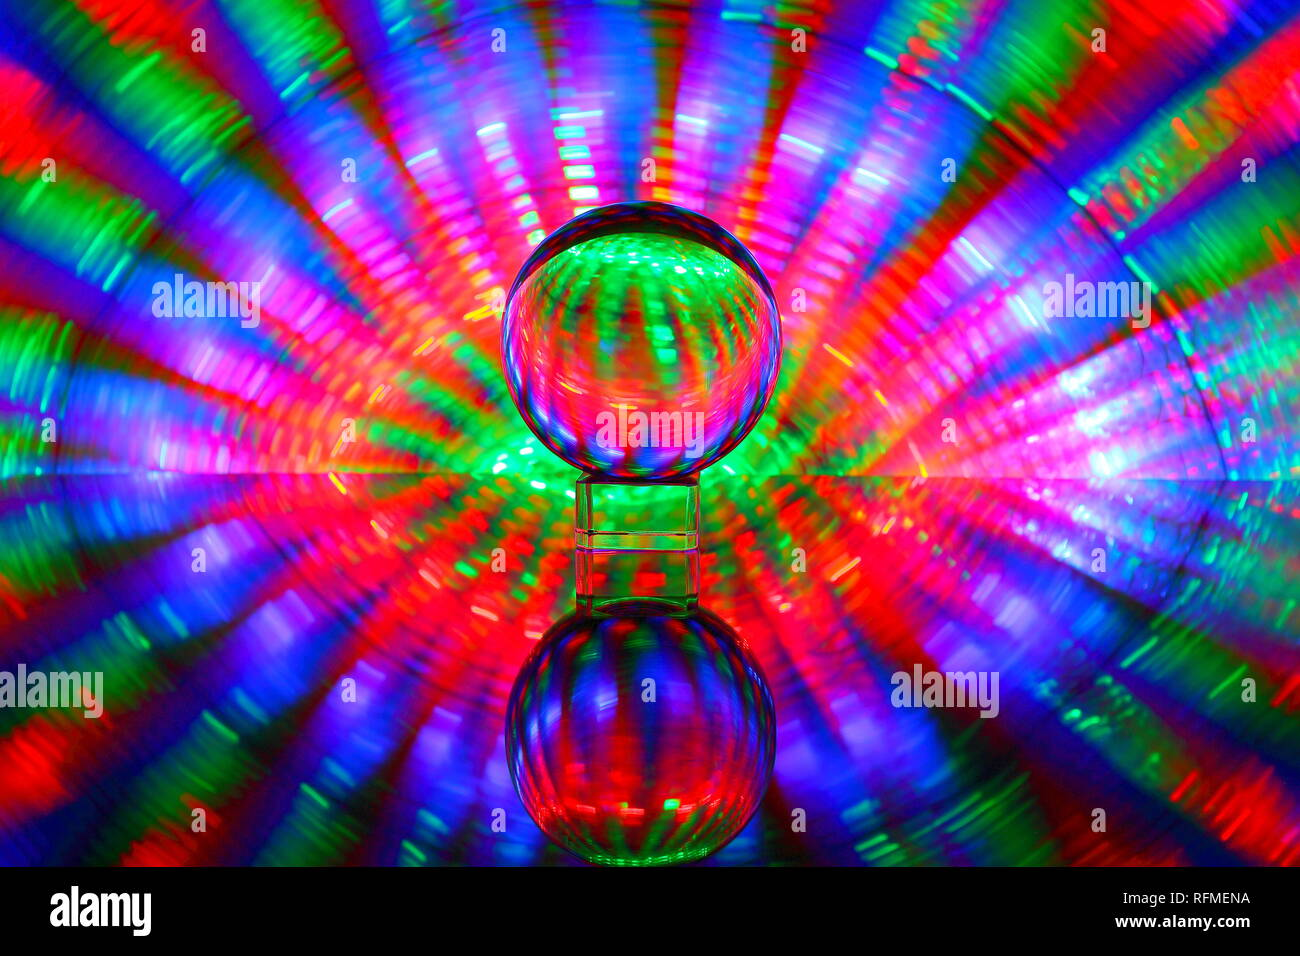 Eye of the Storm created with a lensball and light painting - Stock Image